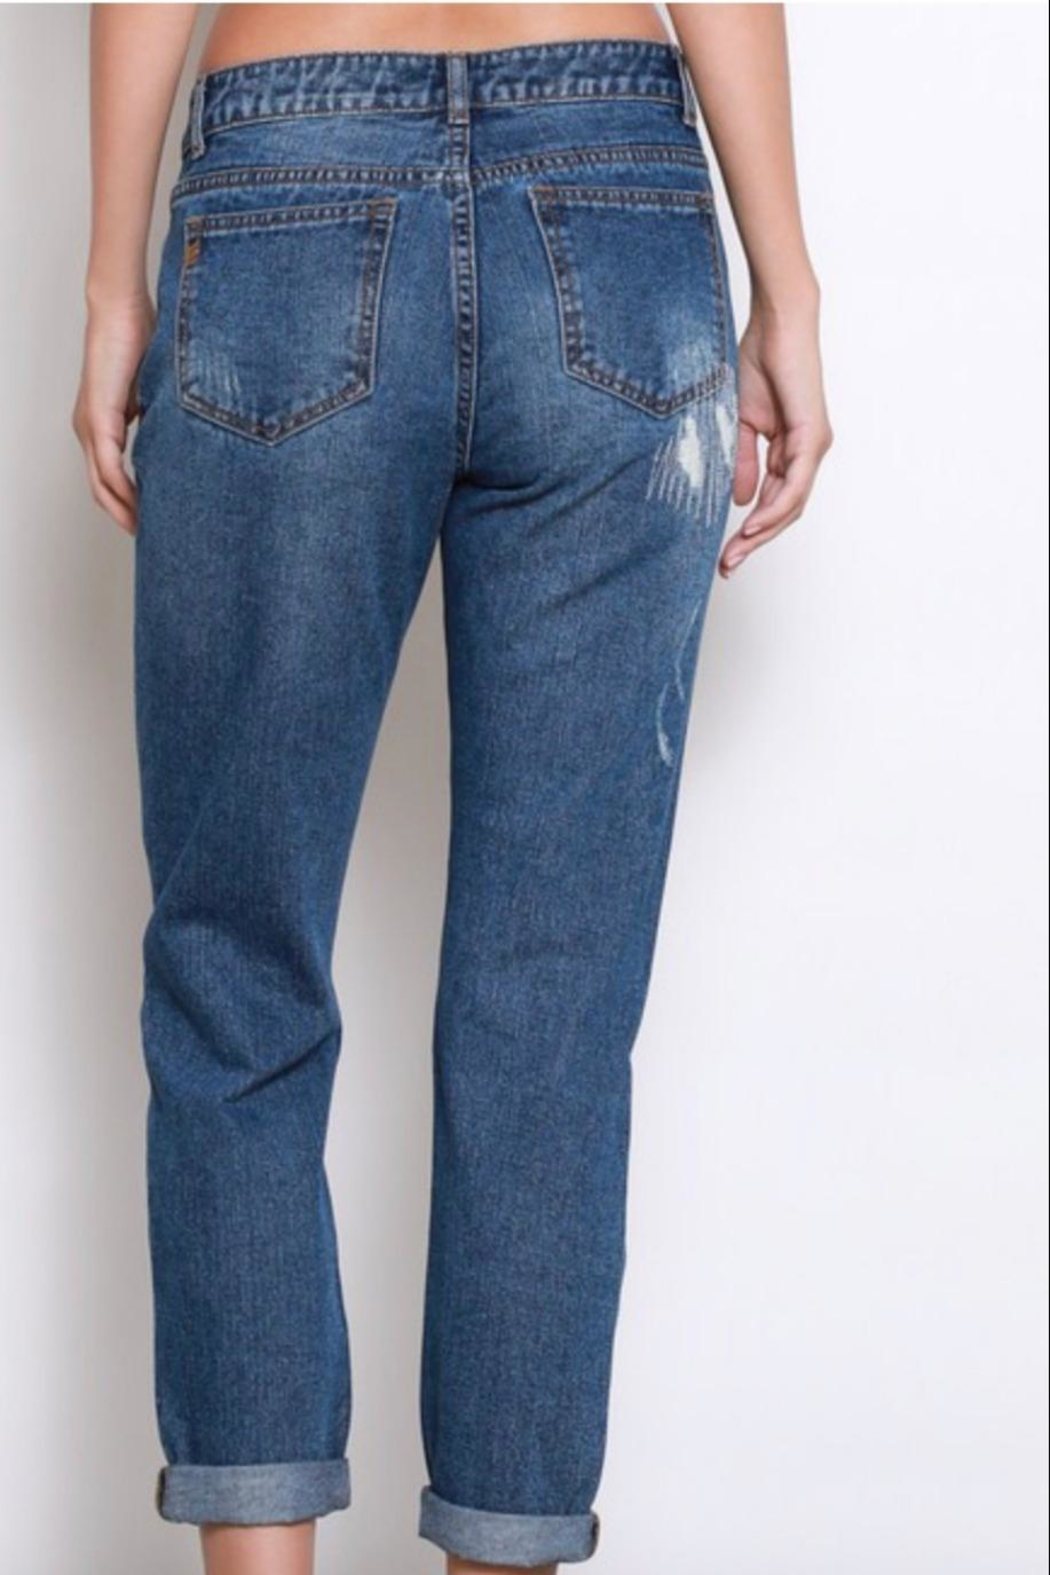 Wishlist Distressed-Denim Boyfriend Jeans - Back Cropped Image